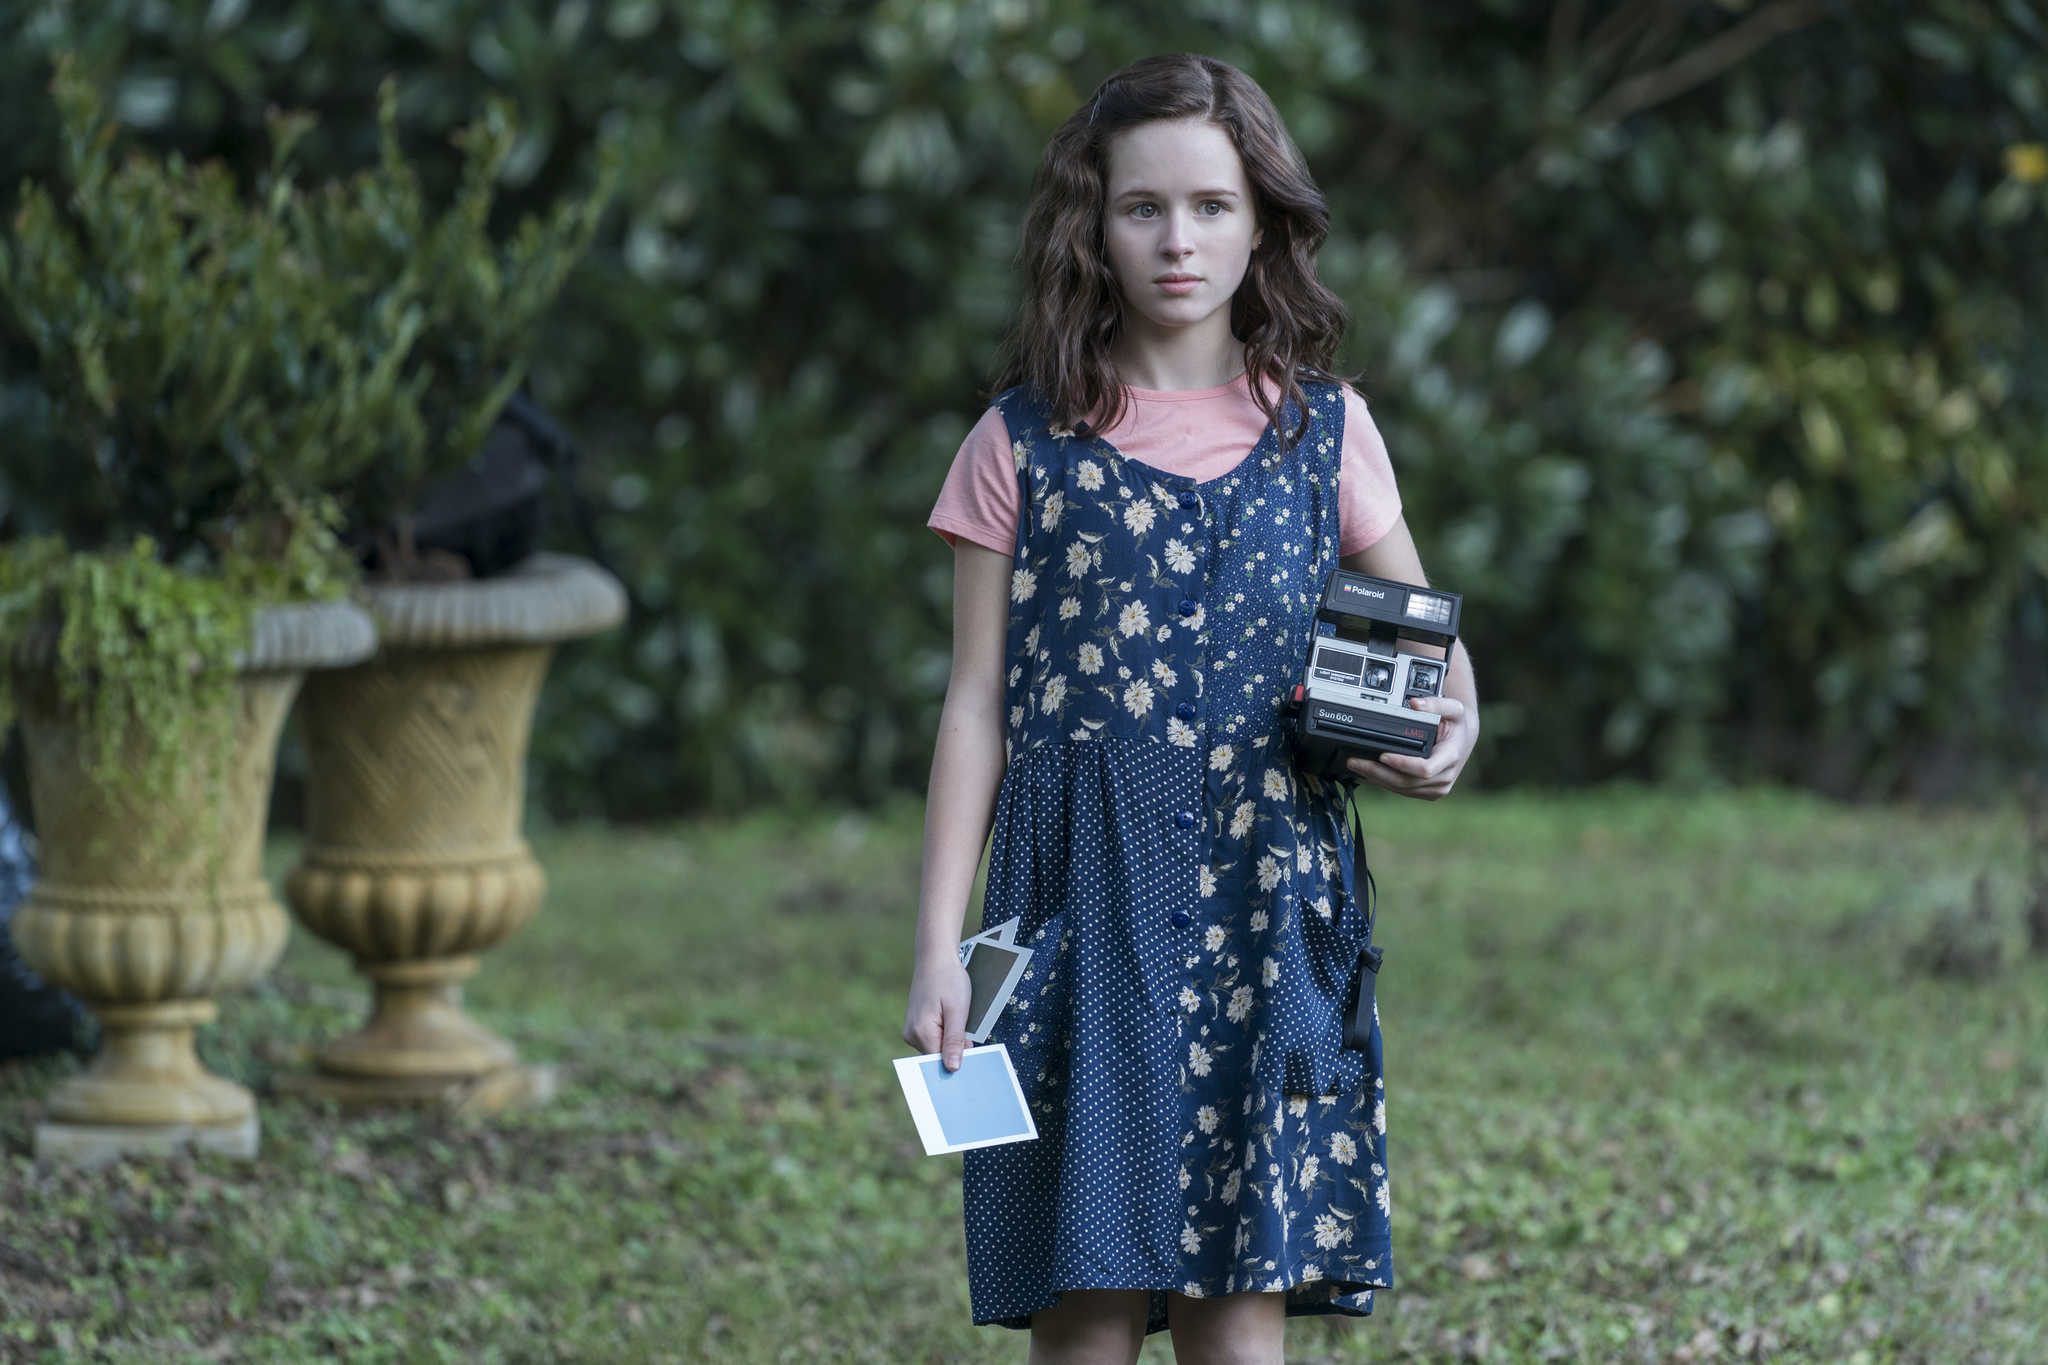 Lulu Wilson in The Haunting of Hill House (2018)